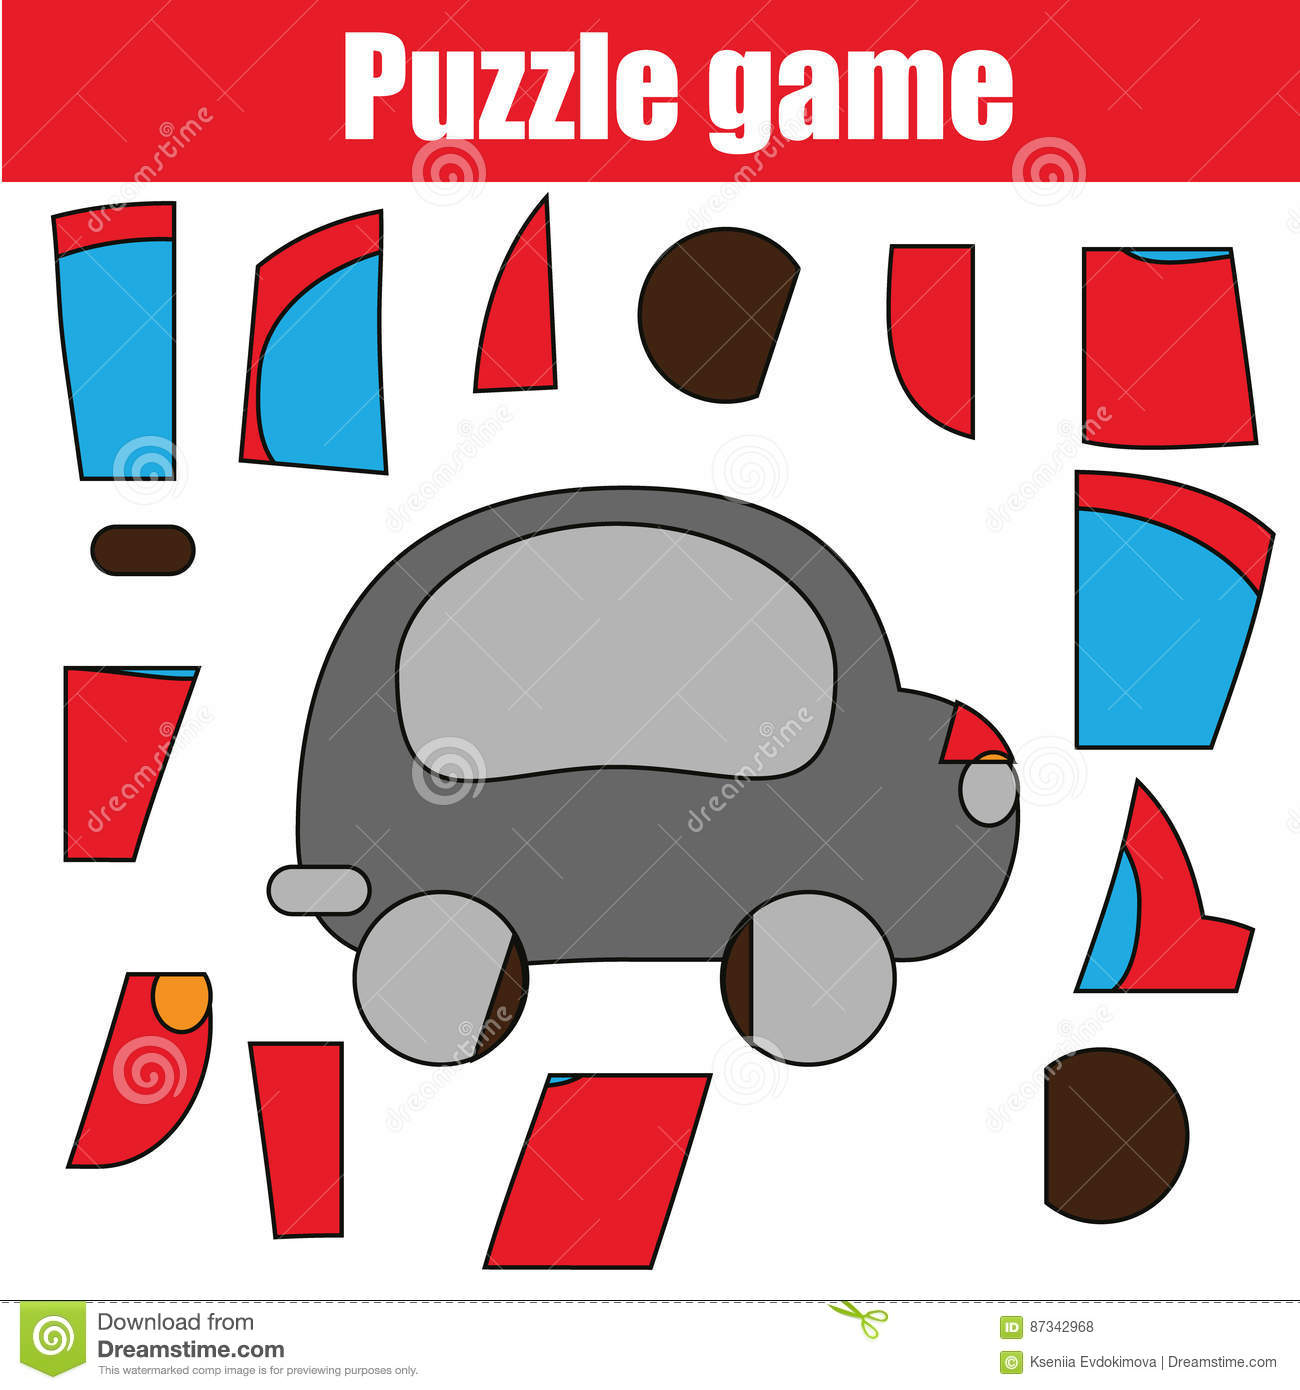 image about Puzzles for Kids Printable named Puzzle Video game With Pink Motor vehicle. Printable Little ones Sport Sheet